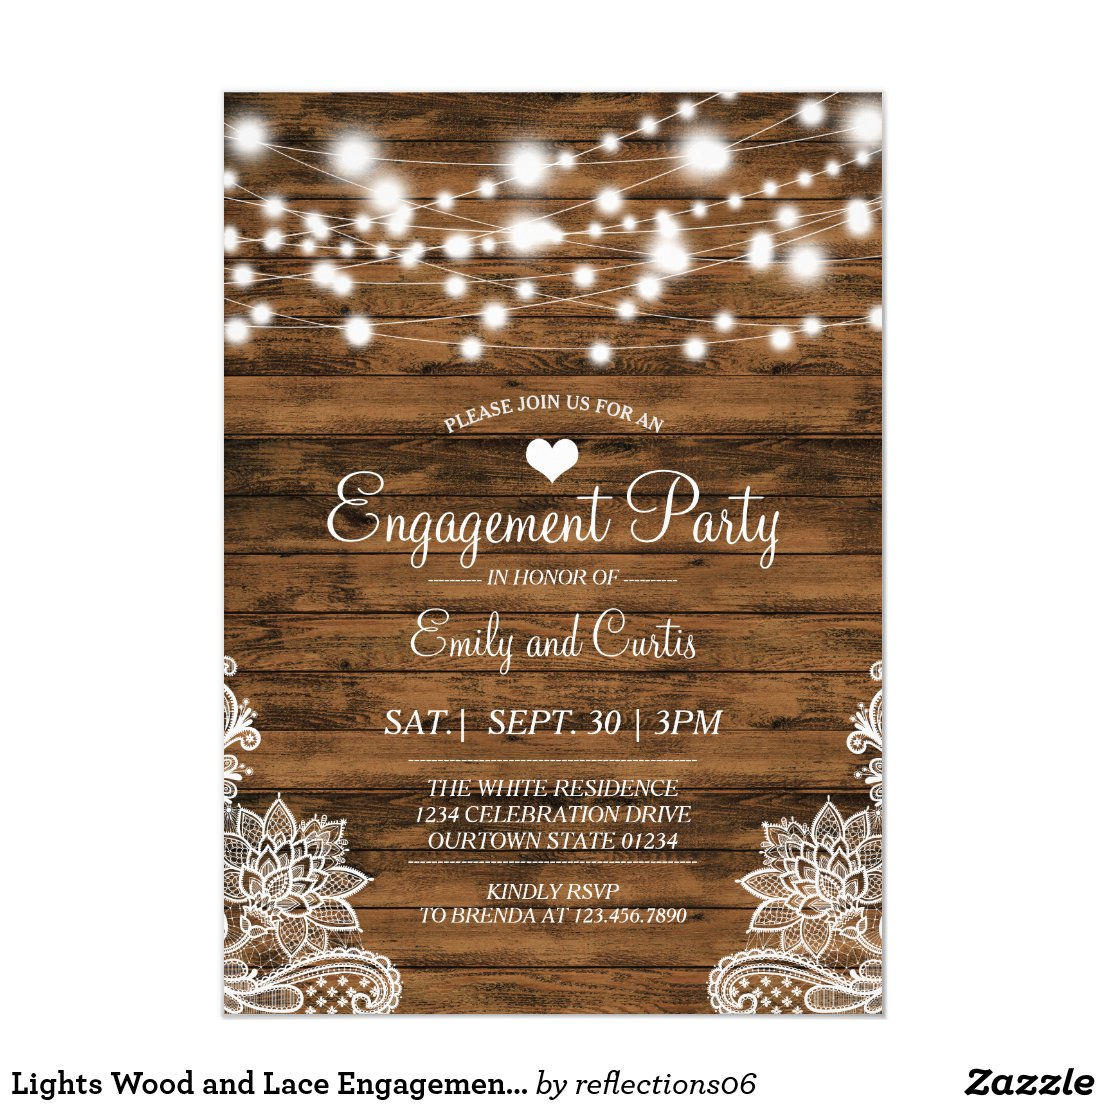 Lights Wood and Lace Engagement Party Invitation